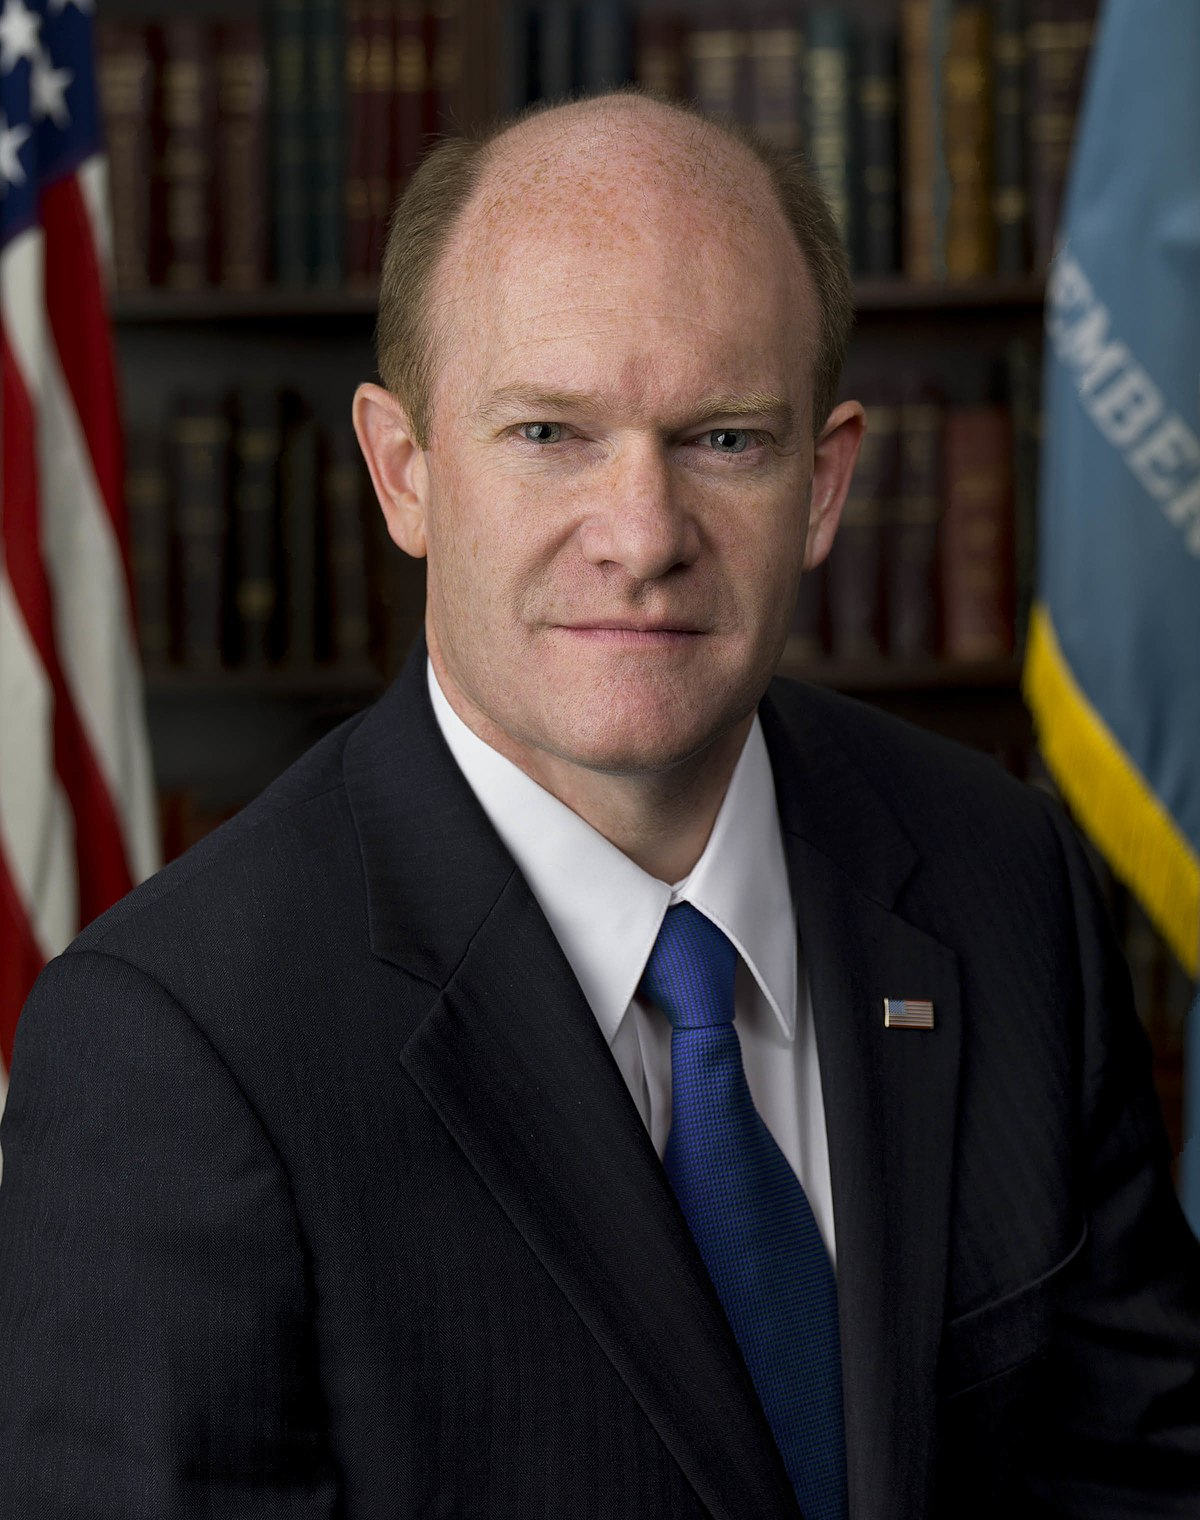 Chris Coons httpsuploadwikimediaorgwikipediacommonsthu